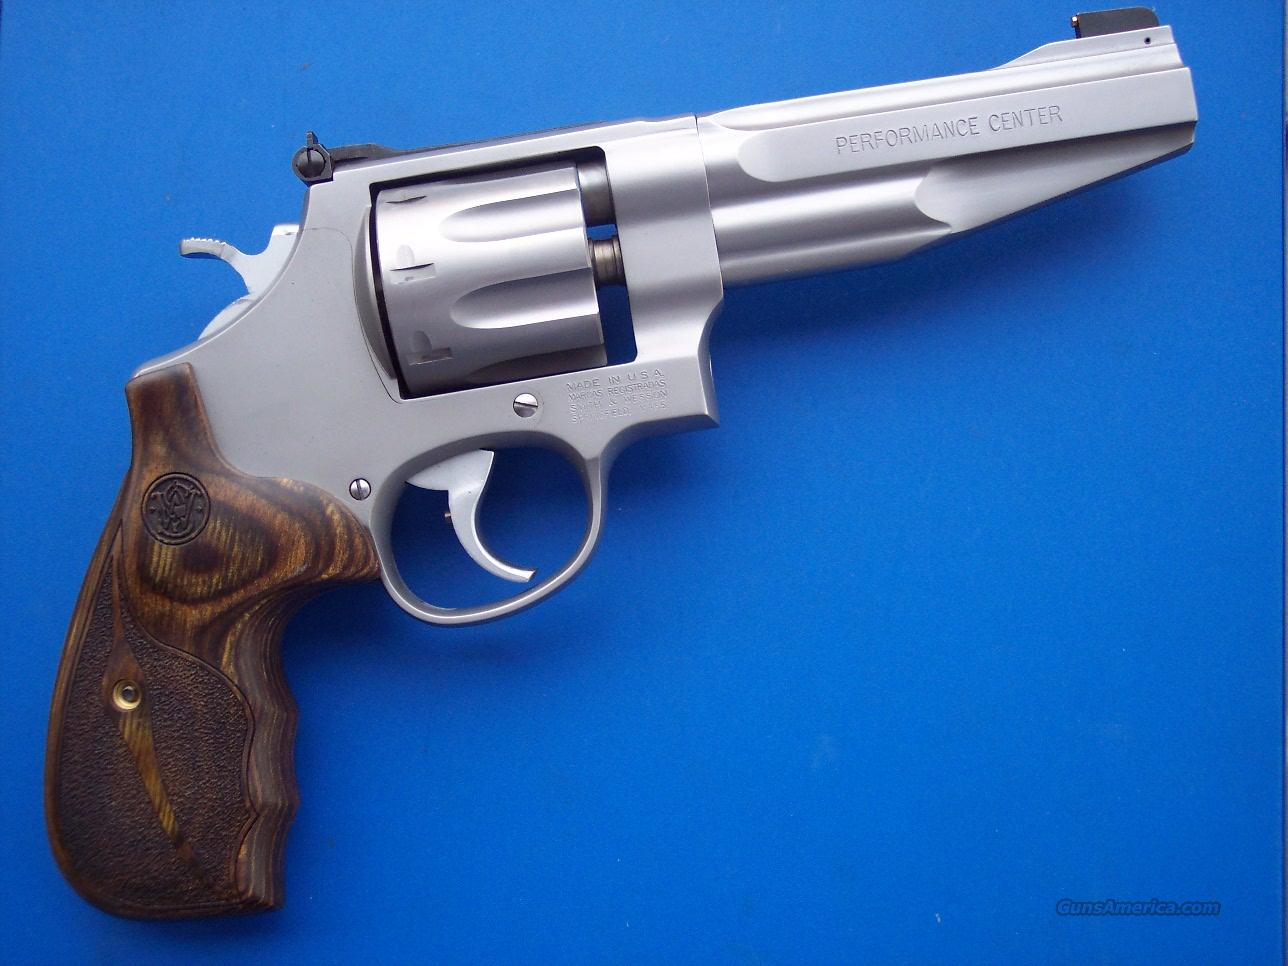 "Smith & Wesson 627 Performance Center 5"" .357 Mag *NEW*  Guns > Pistols > Smith & Wesson Revolvers > Performance Center"